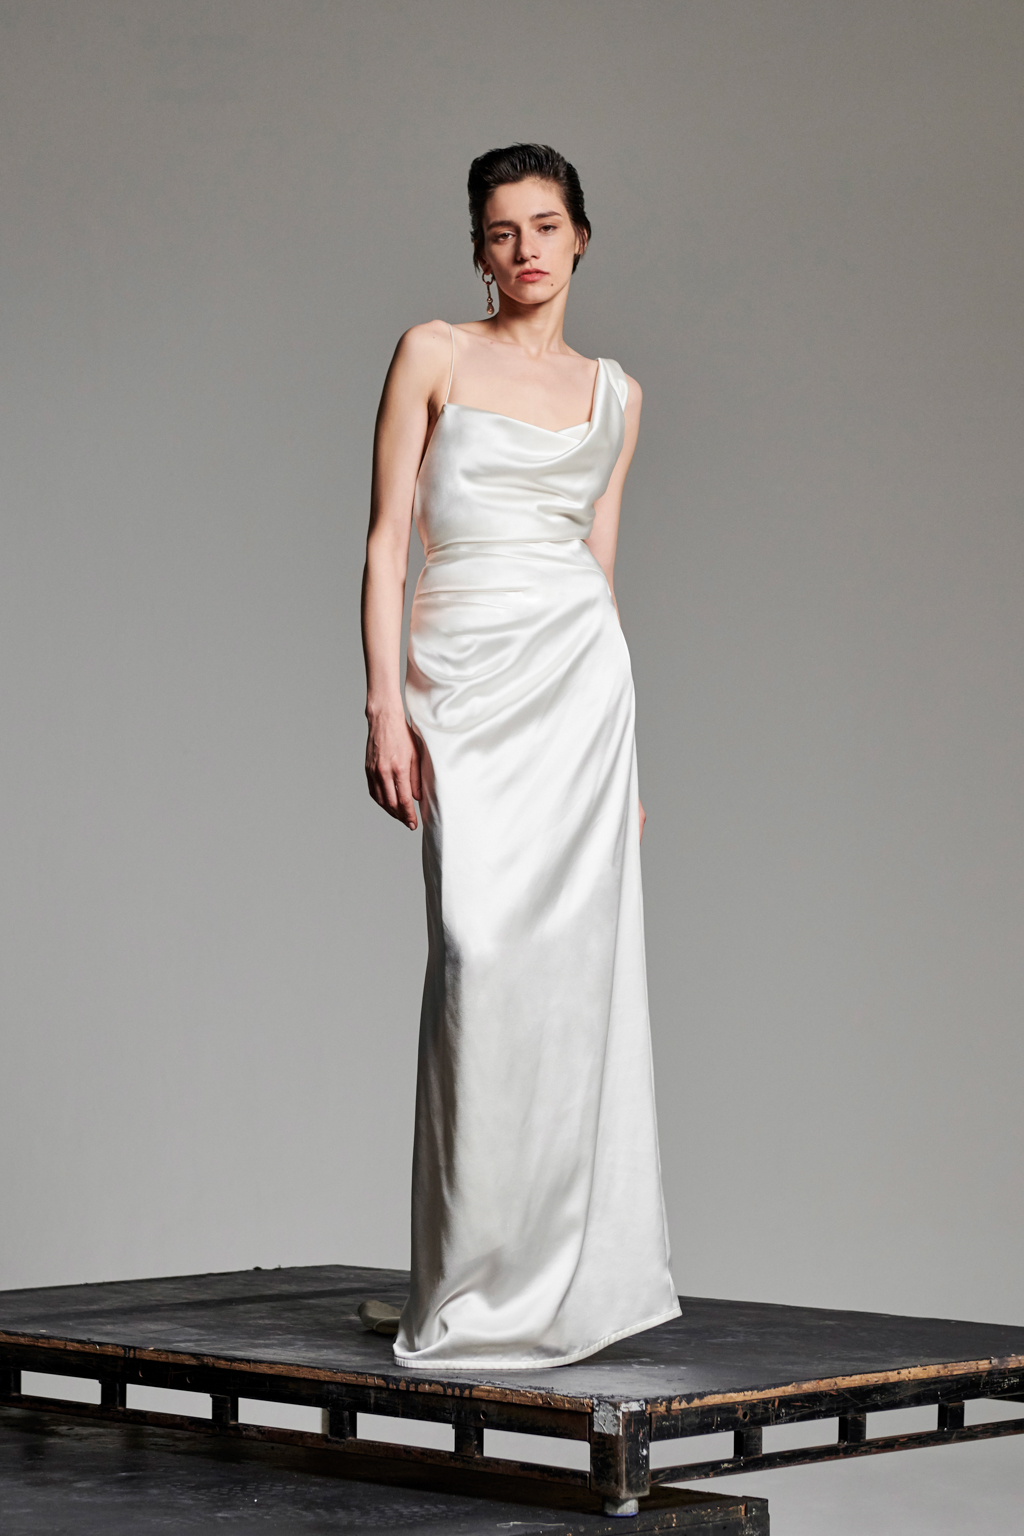 84daa6b0e2 Bridal Made To Order | Collections Bridal | Vivienne Westwood